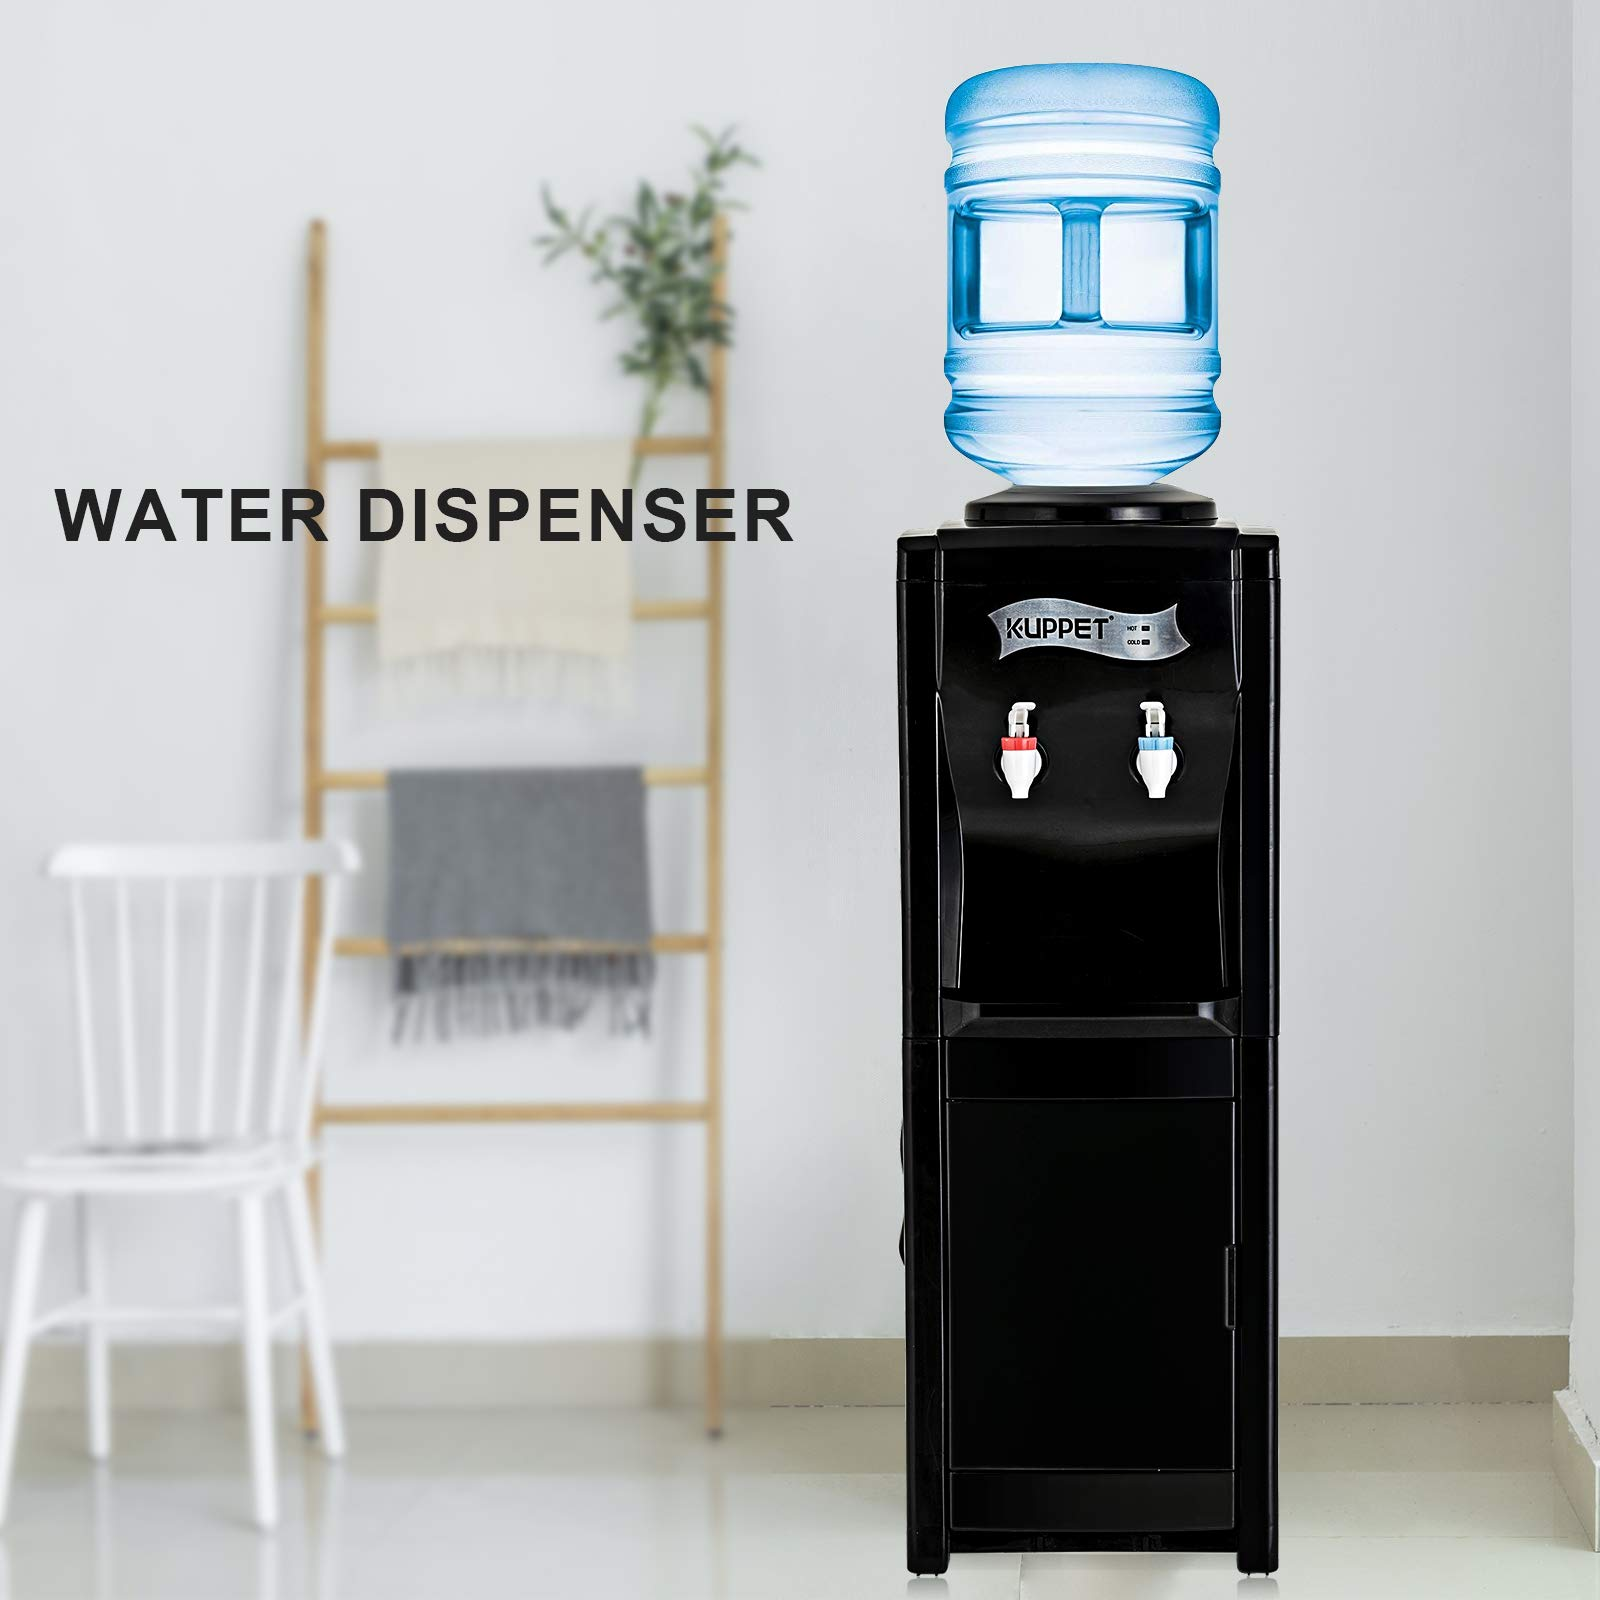 KUPPET Water Cooler Dispenser-Top Loading Freestanding Water Dispenser with Storage Cabinet, 5 Gallon, Two Temperature Settings-Hot(185℉-203℉), Normal Temperature(50℉-59℉), BLACK(32'', Black) by KUPPET (Image #8)